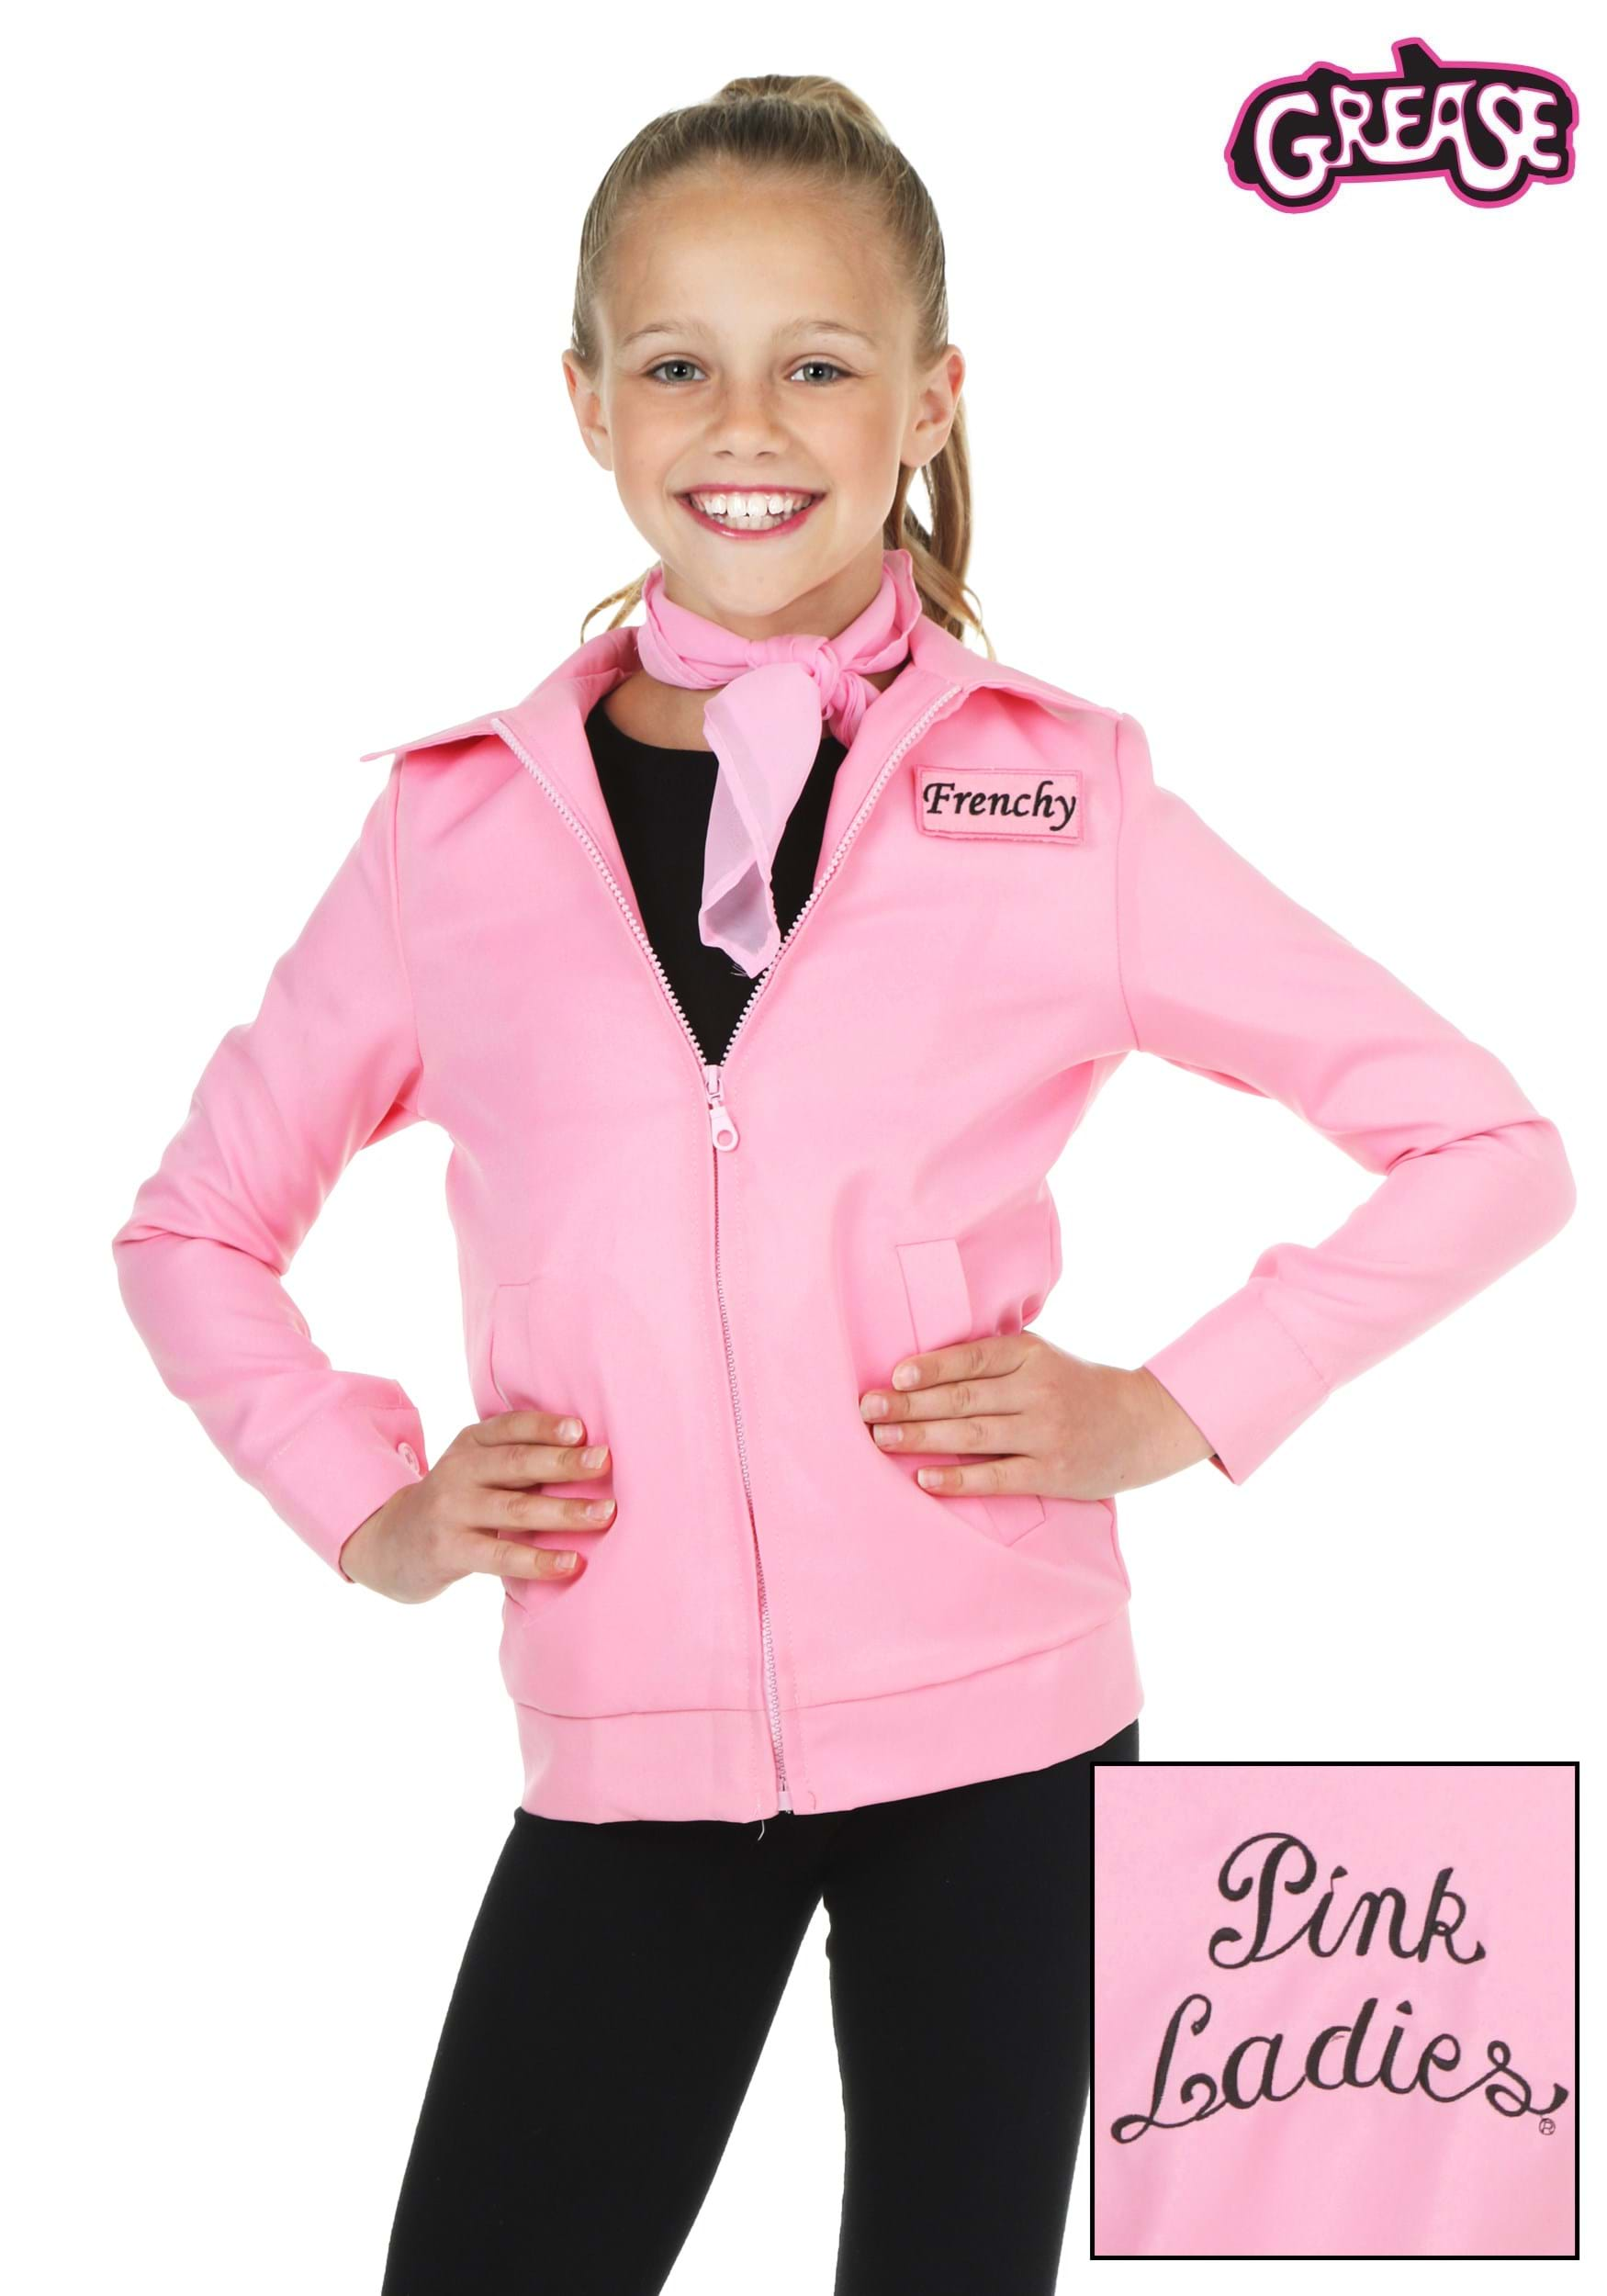 Grease Costumes - Adult, Kids Grease Movie Costumes